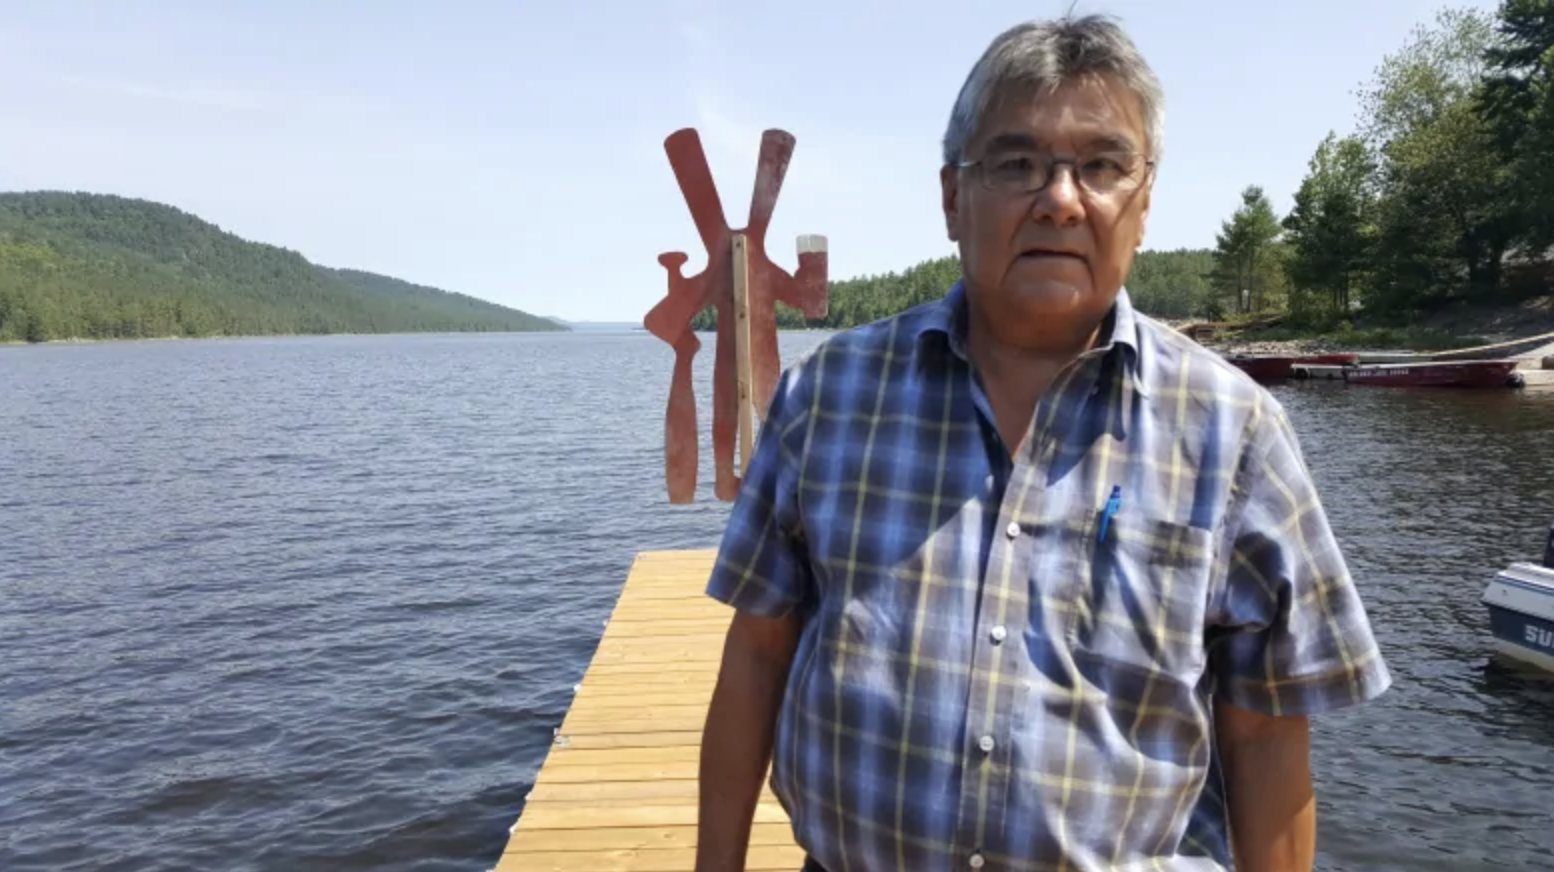 Harry St. Denis, the long-serving chief of Wolf Lake First Nation, said the land being used for the Zibi development is sacred, and that Wolf Lake First Nation were not adequately consulted before the project got underway. (photo by Kristin Nelson/CBC)